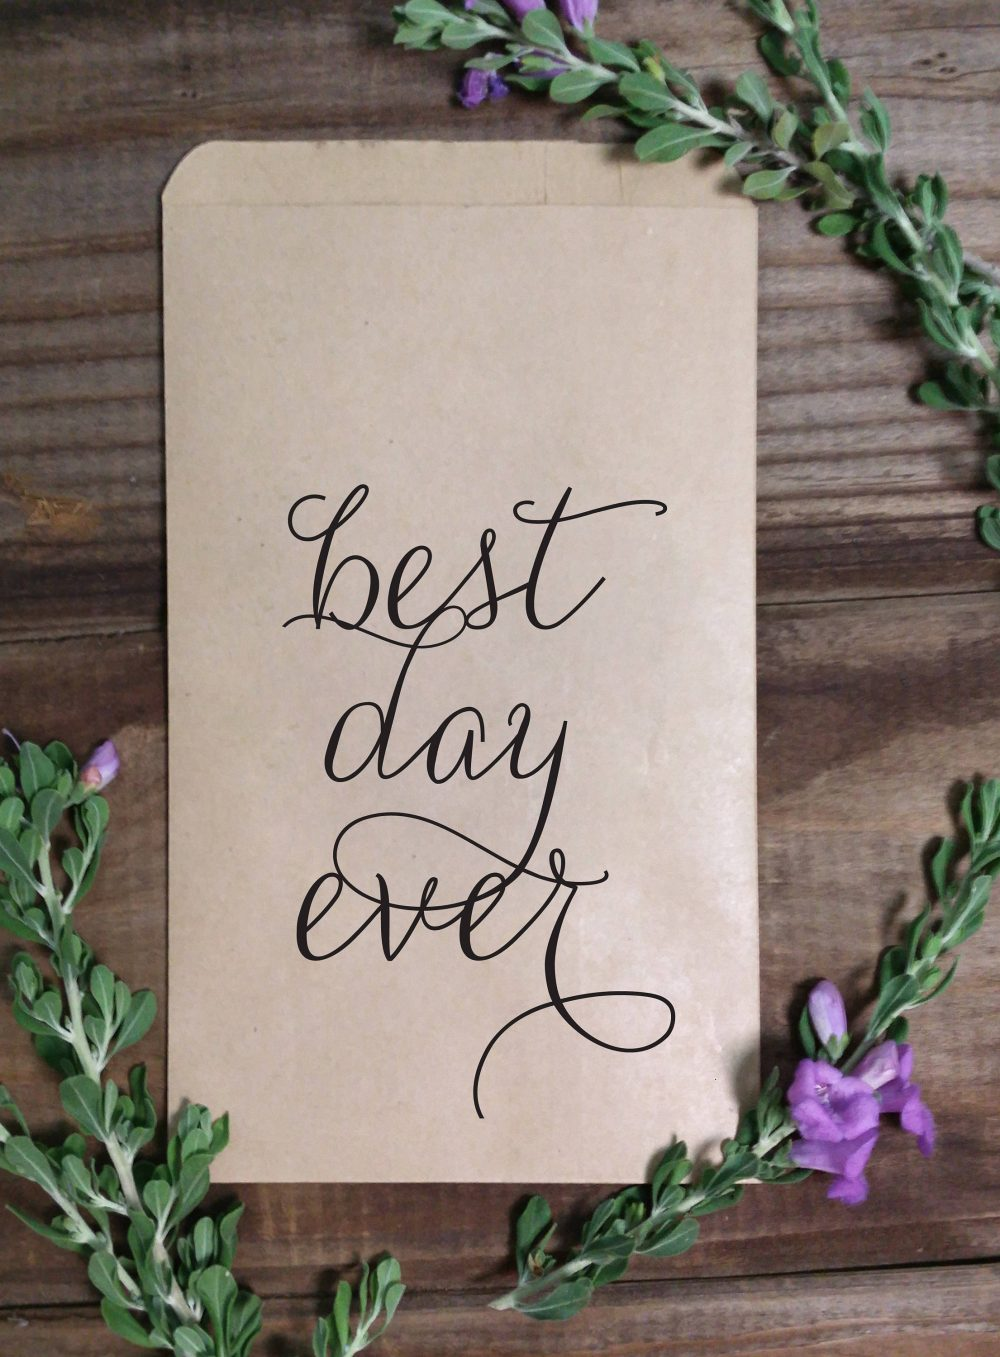 Best Day Ever Rustic Wedding Treat Bags, Goodie Favor Country, Kraft Brown Rustic, Burlap, Popcorn, Candy